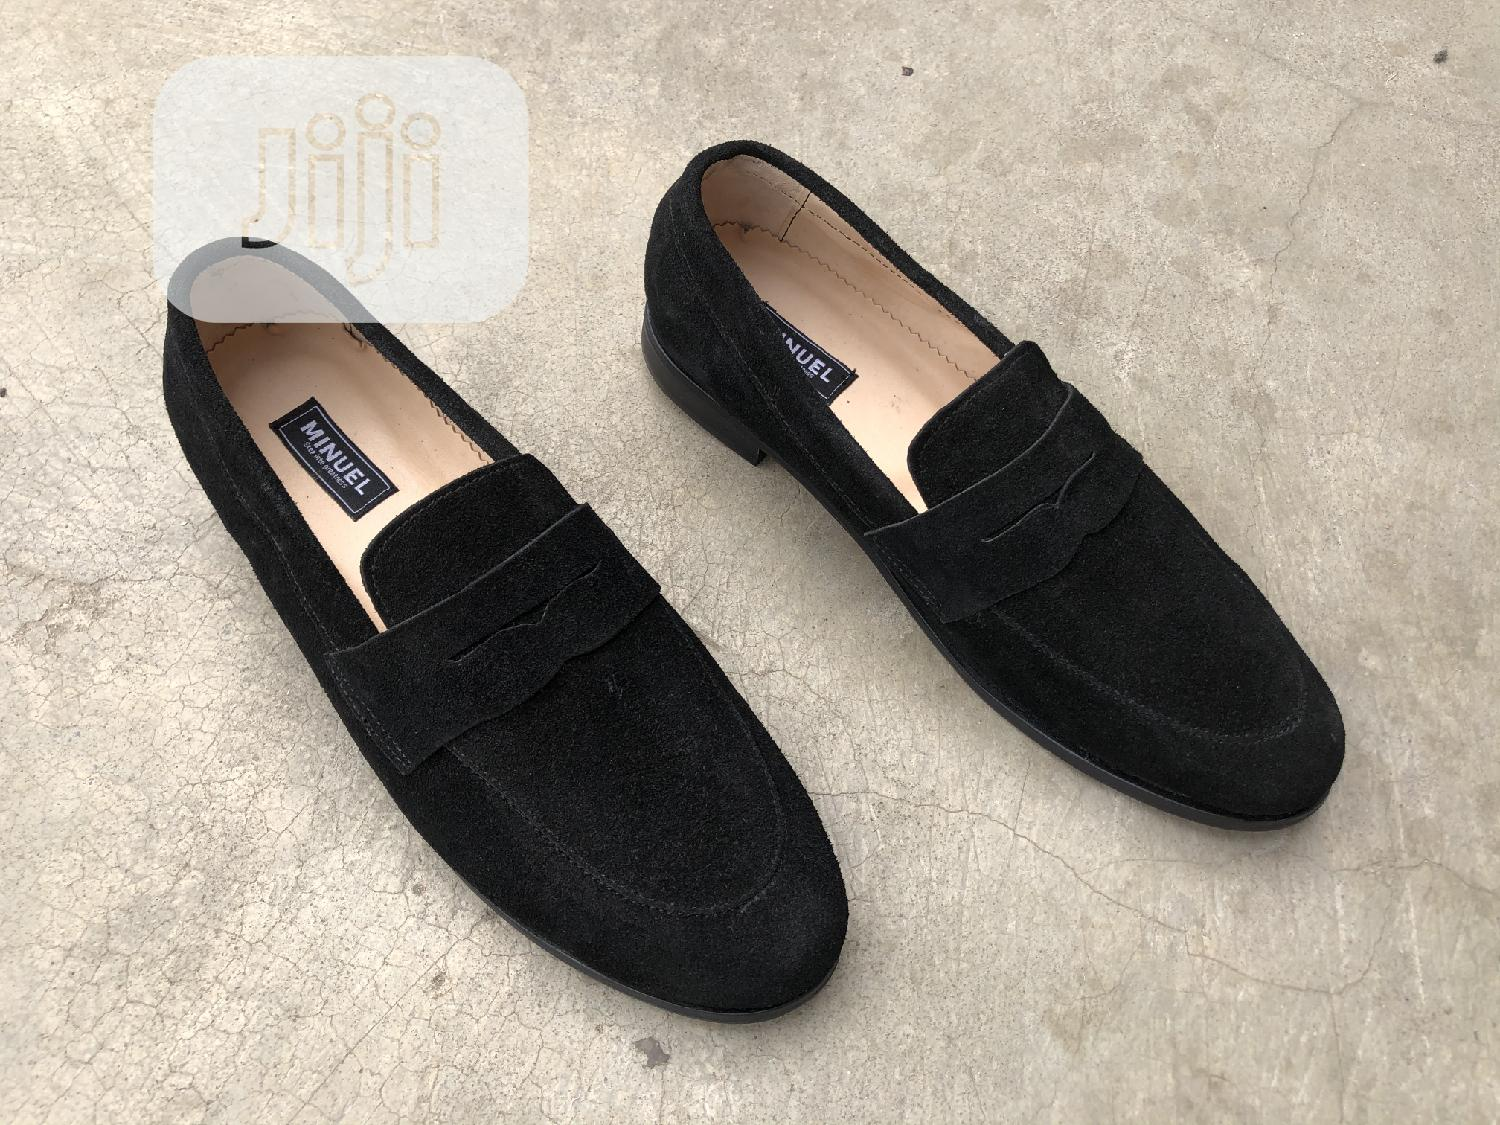 Blavk Suede Penny Loafers   Shoes for sale in Mushin, Lagos State, Nigeria